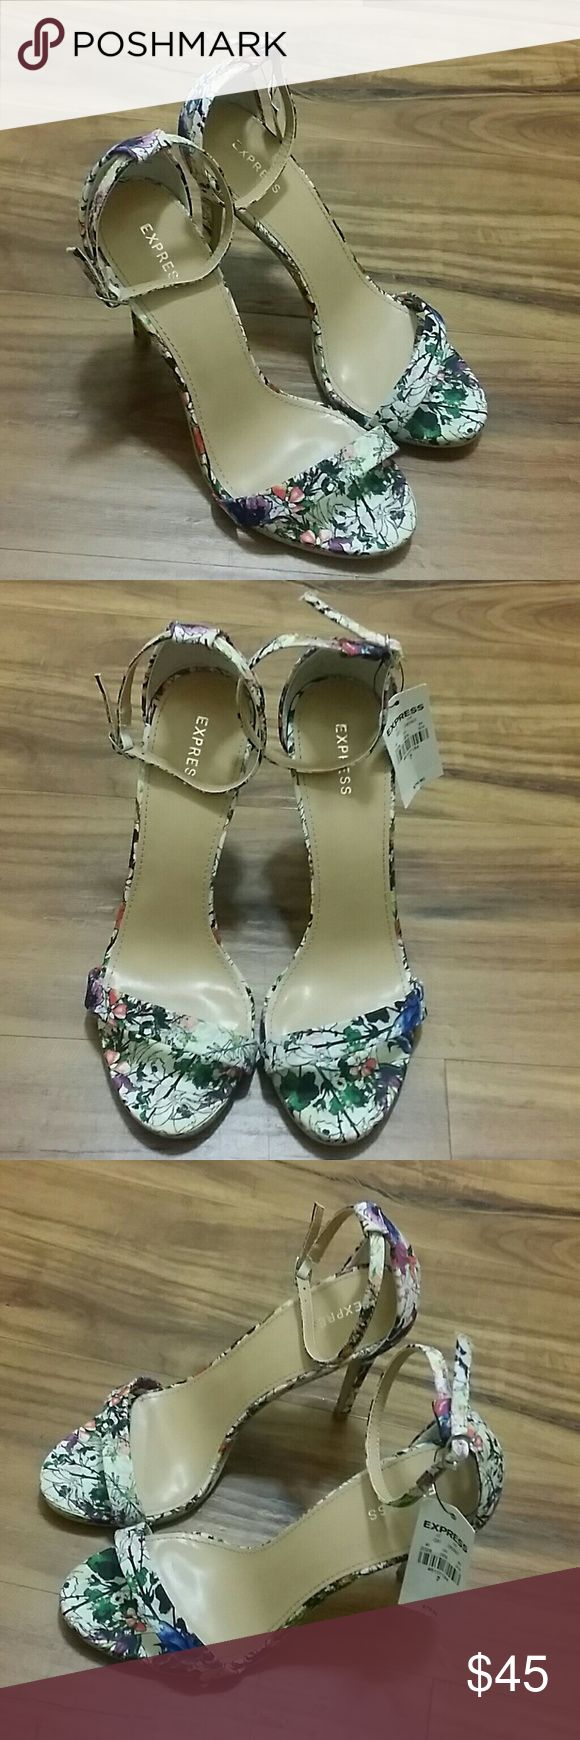 """Express strappy floral heels NWT- strappy floral heels from Express. Get ready for spring with these beautiful open toe ankle strap heels in a size 7.   4"""" stiletto heel. Adjustable ankle straps. Express Shoes Heels"""